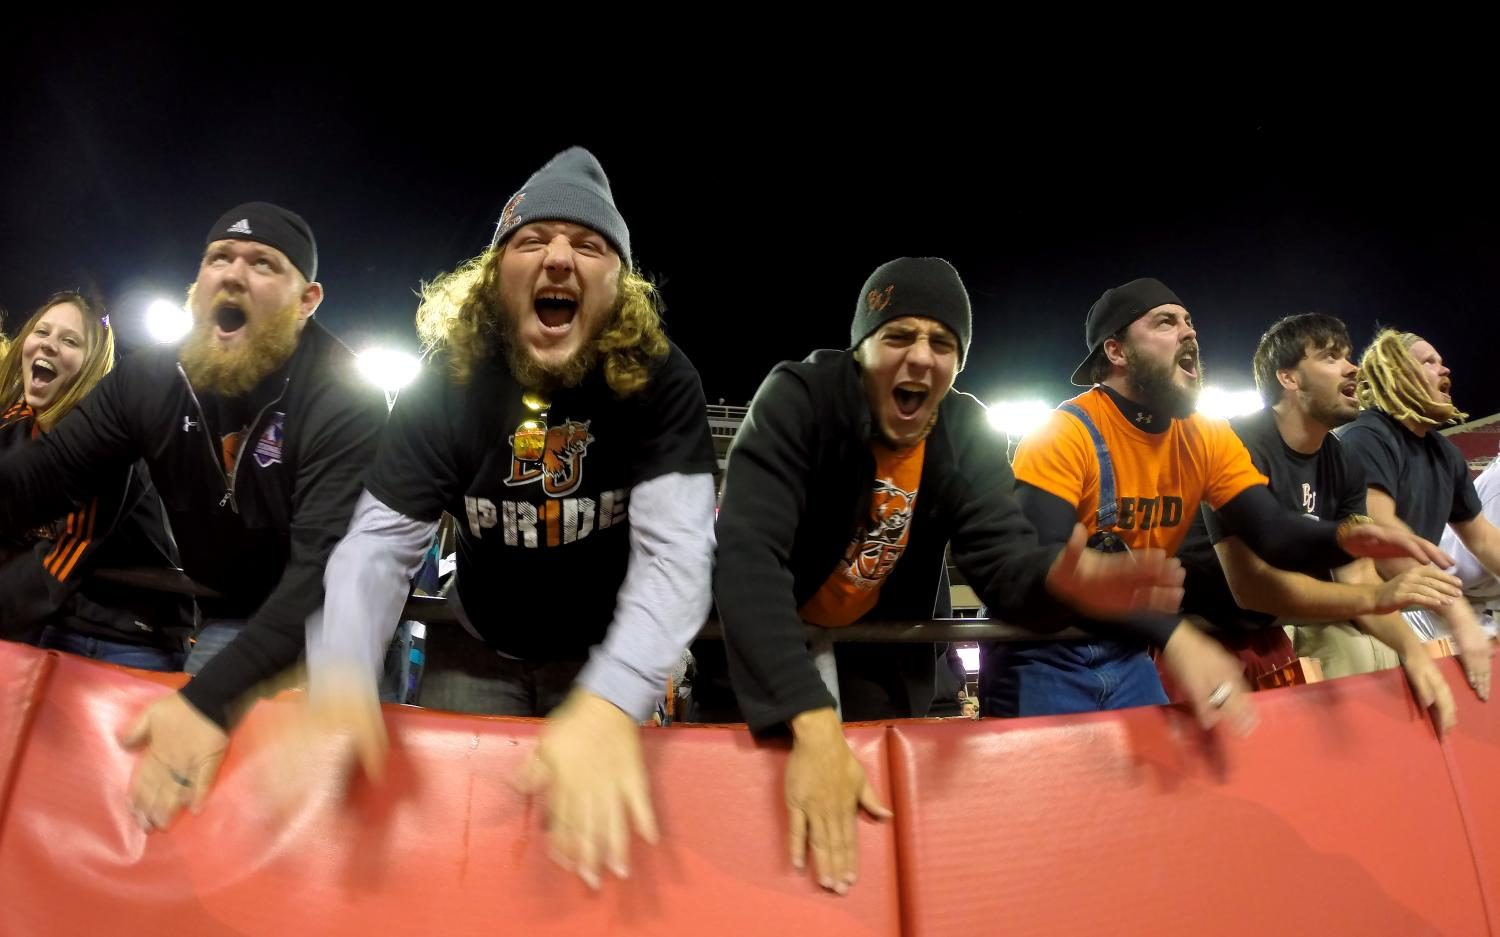 Fans cheer on the Baker football team at Arrowhead Stadium on Oct. 11, 2014, during the NAIA Gridiron Challenge. The Wildcats defeated rival Benedictine 27-21 and improved to a perfect 6-0 record on the season, ensuring a winning season for the eighth consecutive year. Many people think going to a small school limits you, but this game at Arrowhead is just one example of how Baker excels at providing amazing opportunities that you never think could happen.